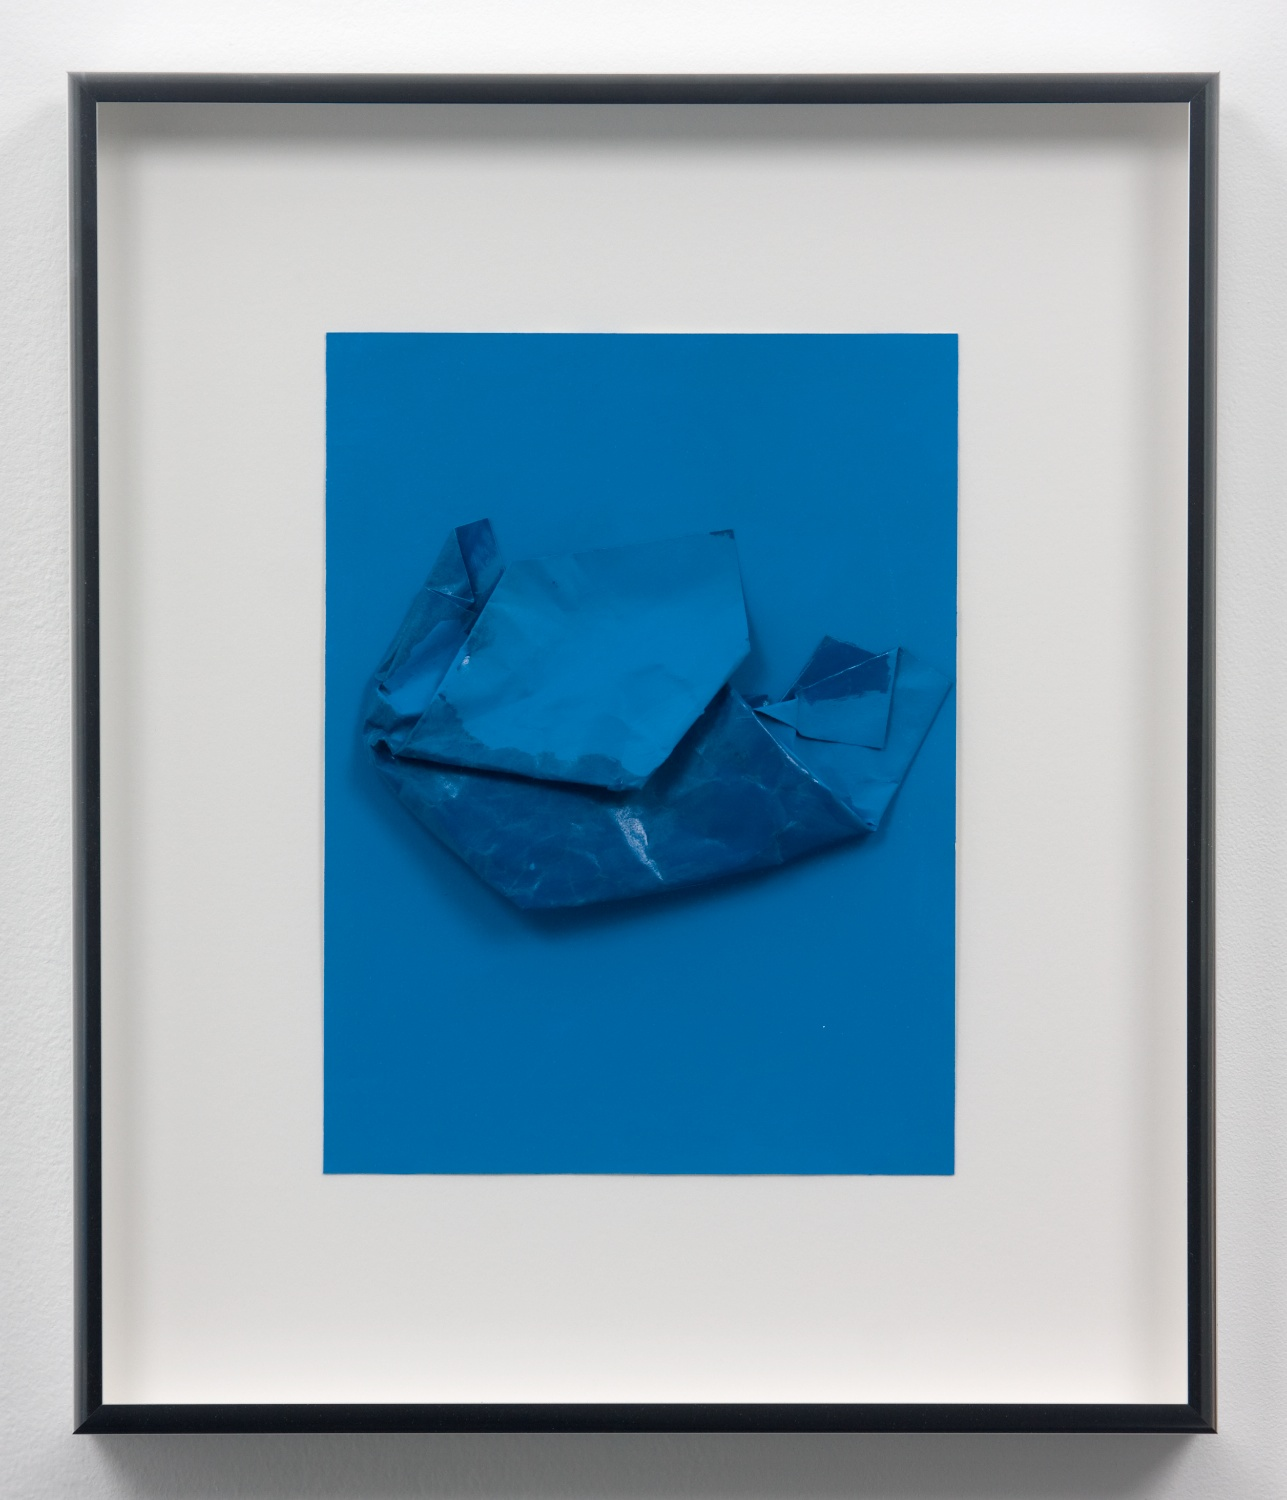 Lisa WIlliamson  Untitled (Blue Croissant)  2010 Acrylic and enamel on paper 12h x 9w x 1d in LW063